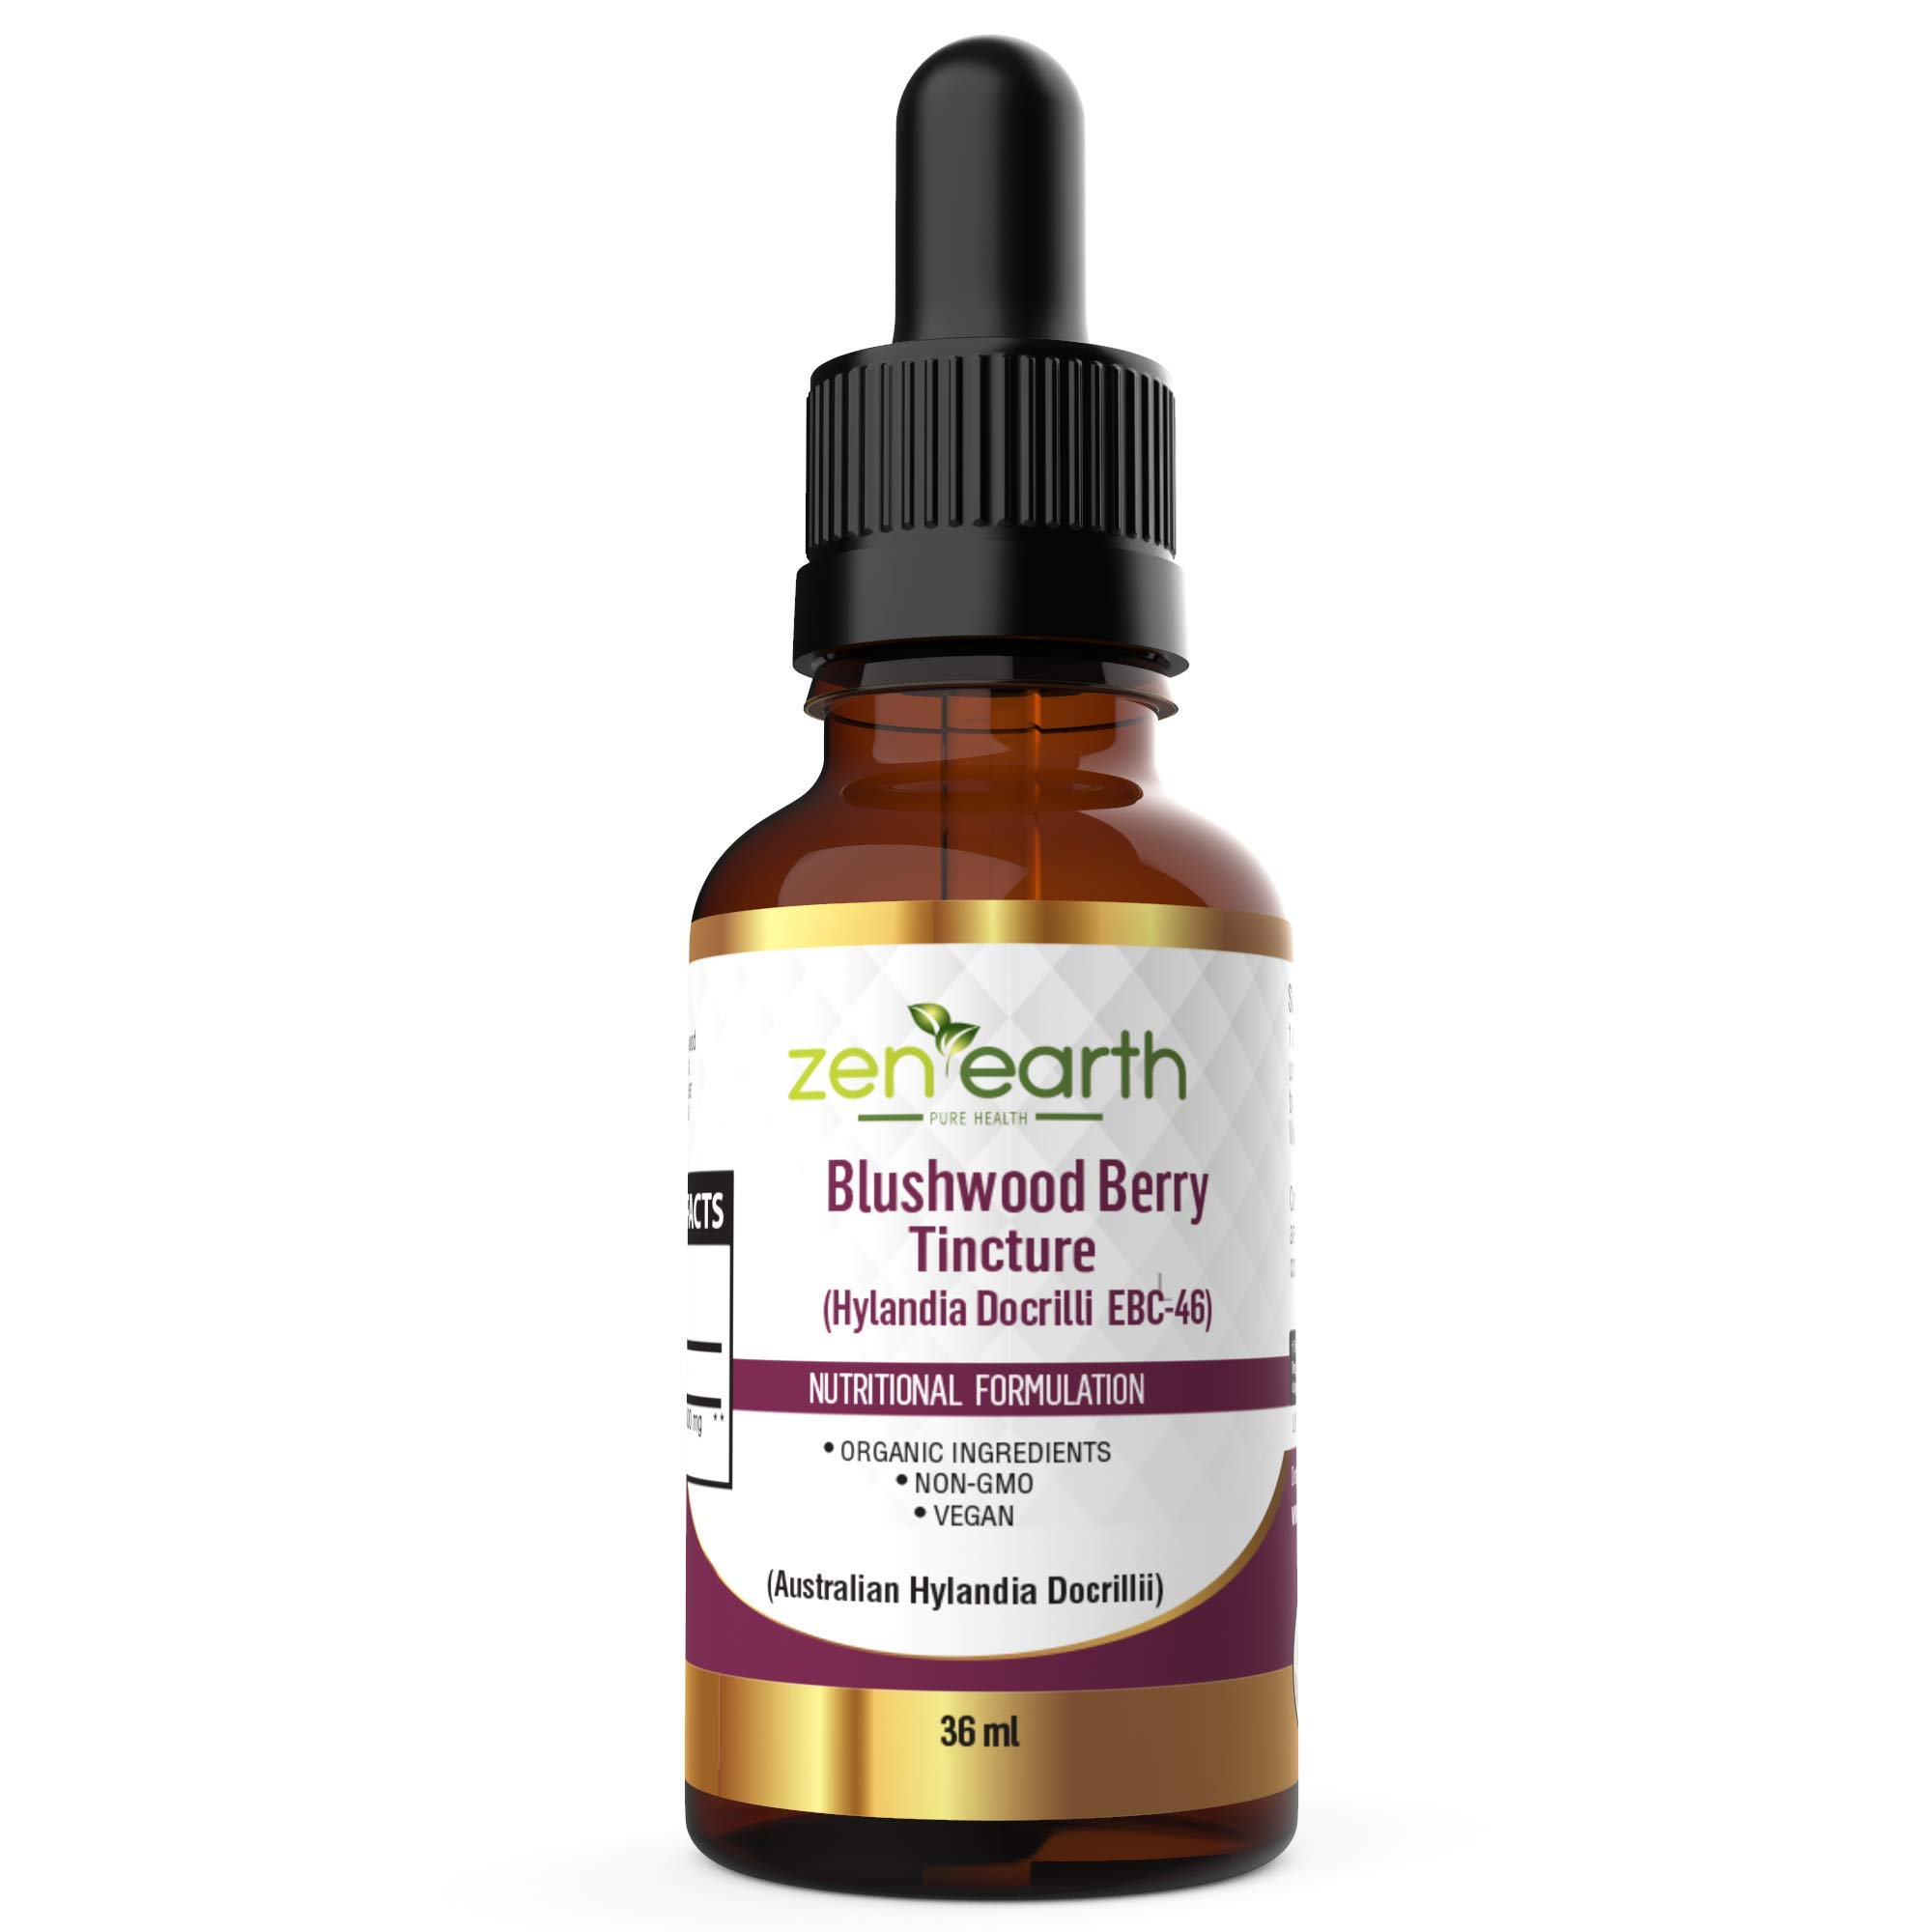 Blushwood Berry Tincture 36 ml Hylandia Dockrillii from Australia